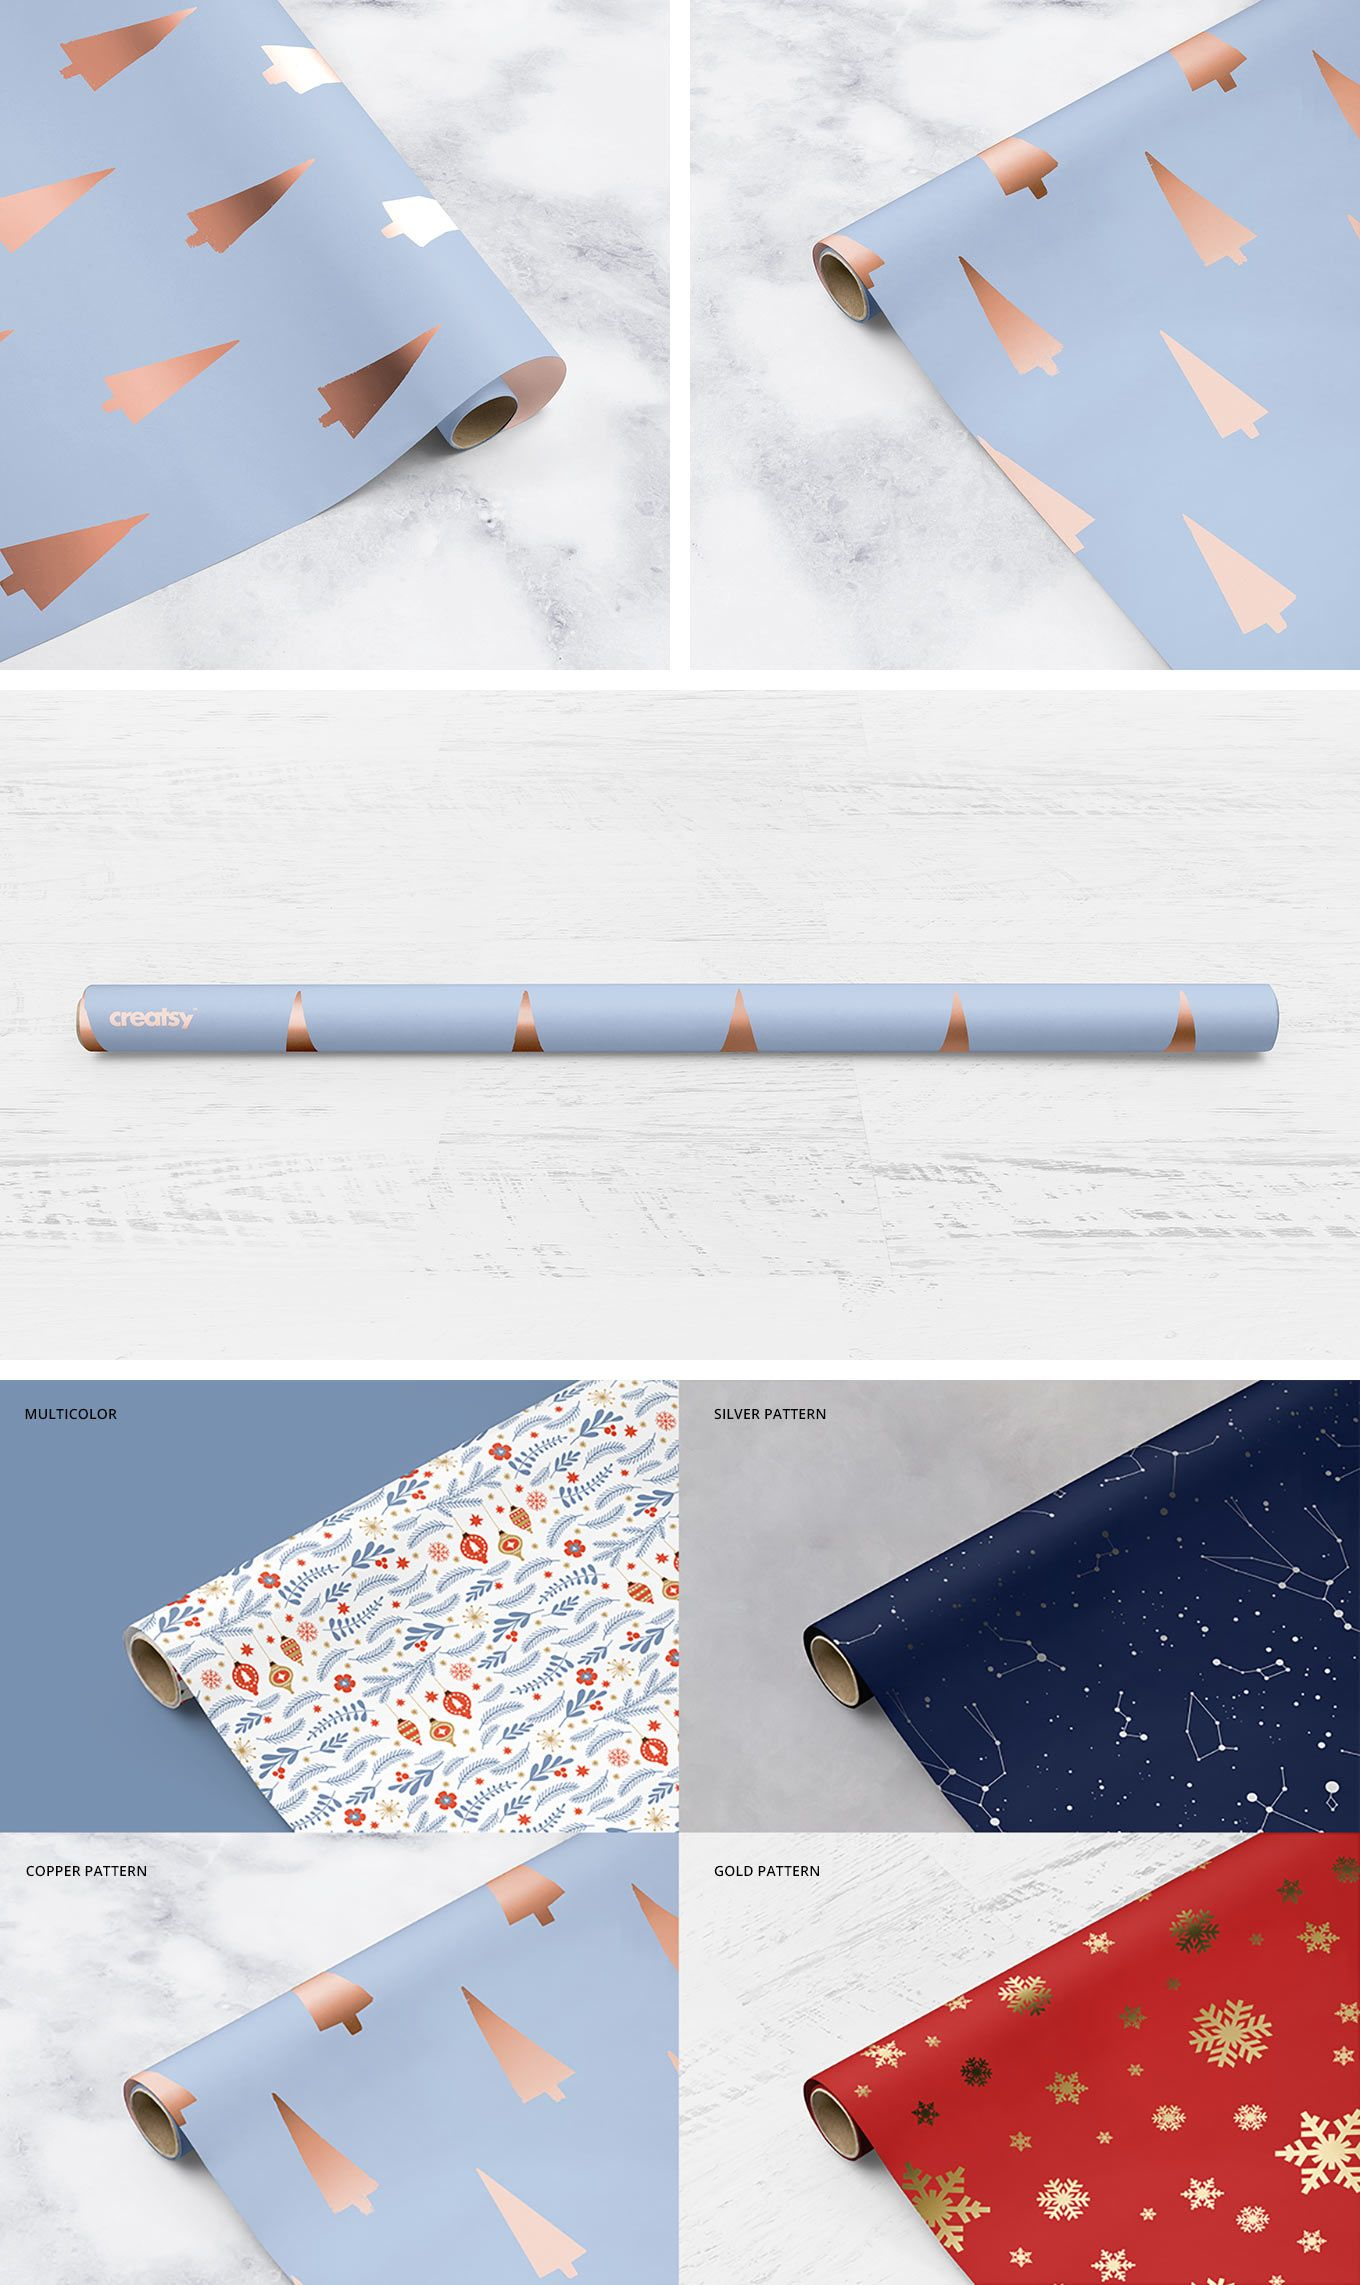 Gift Wrapping Paper Mockup Set Gift Wrapping Paper Wrapping Paper Design Paper Mockup